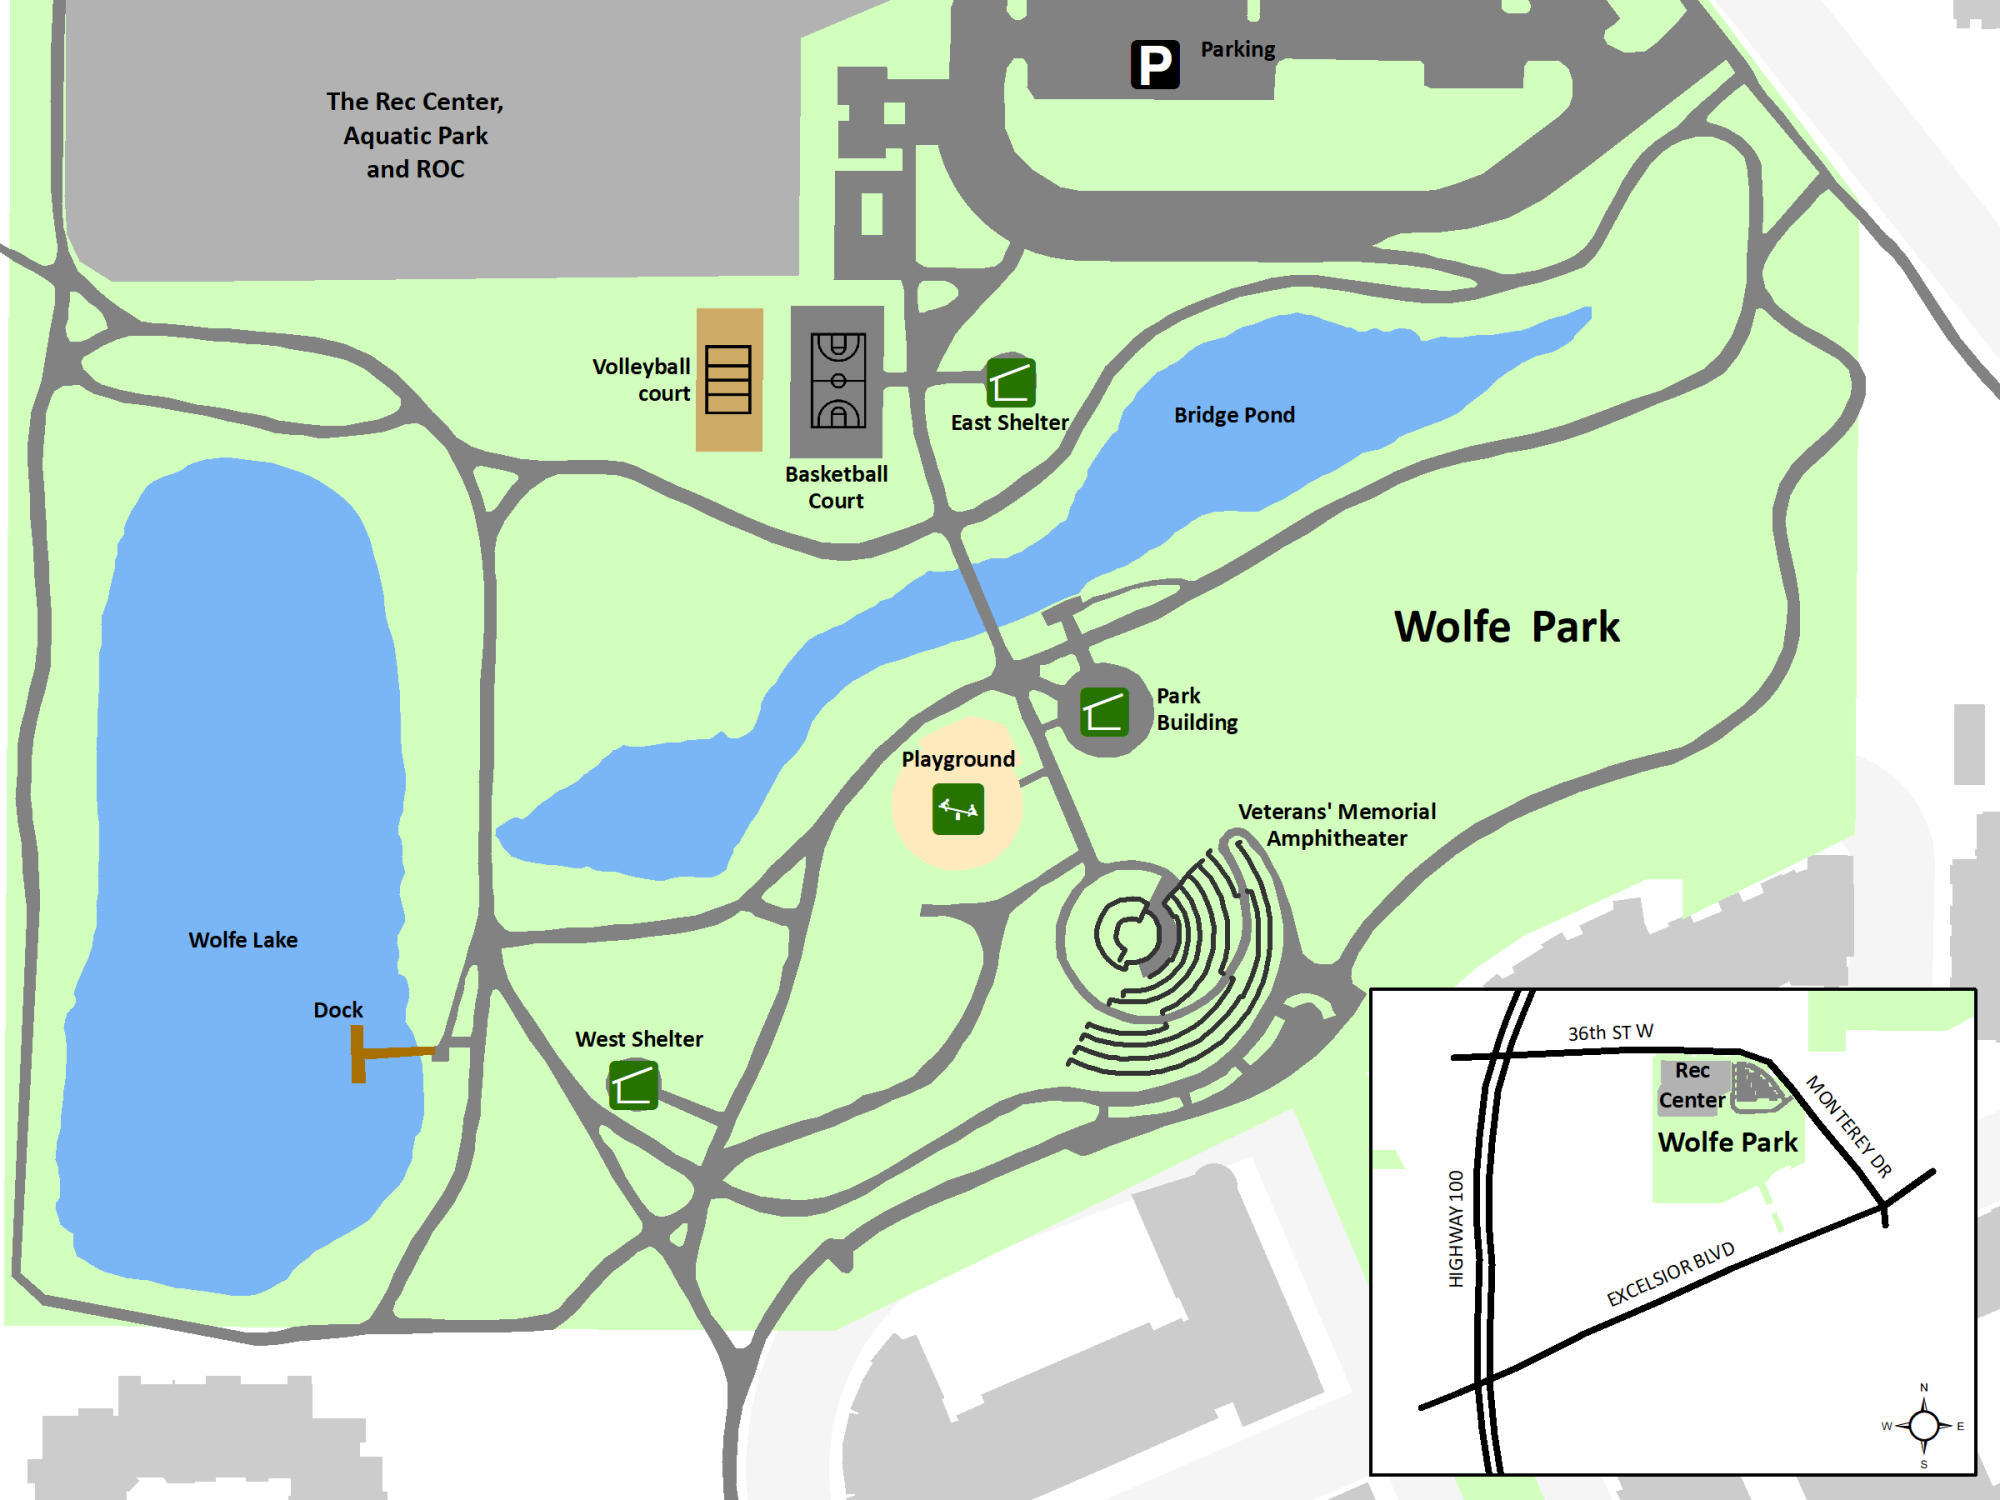 Wolfe Park layout map